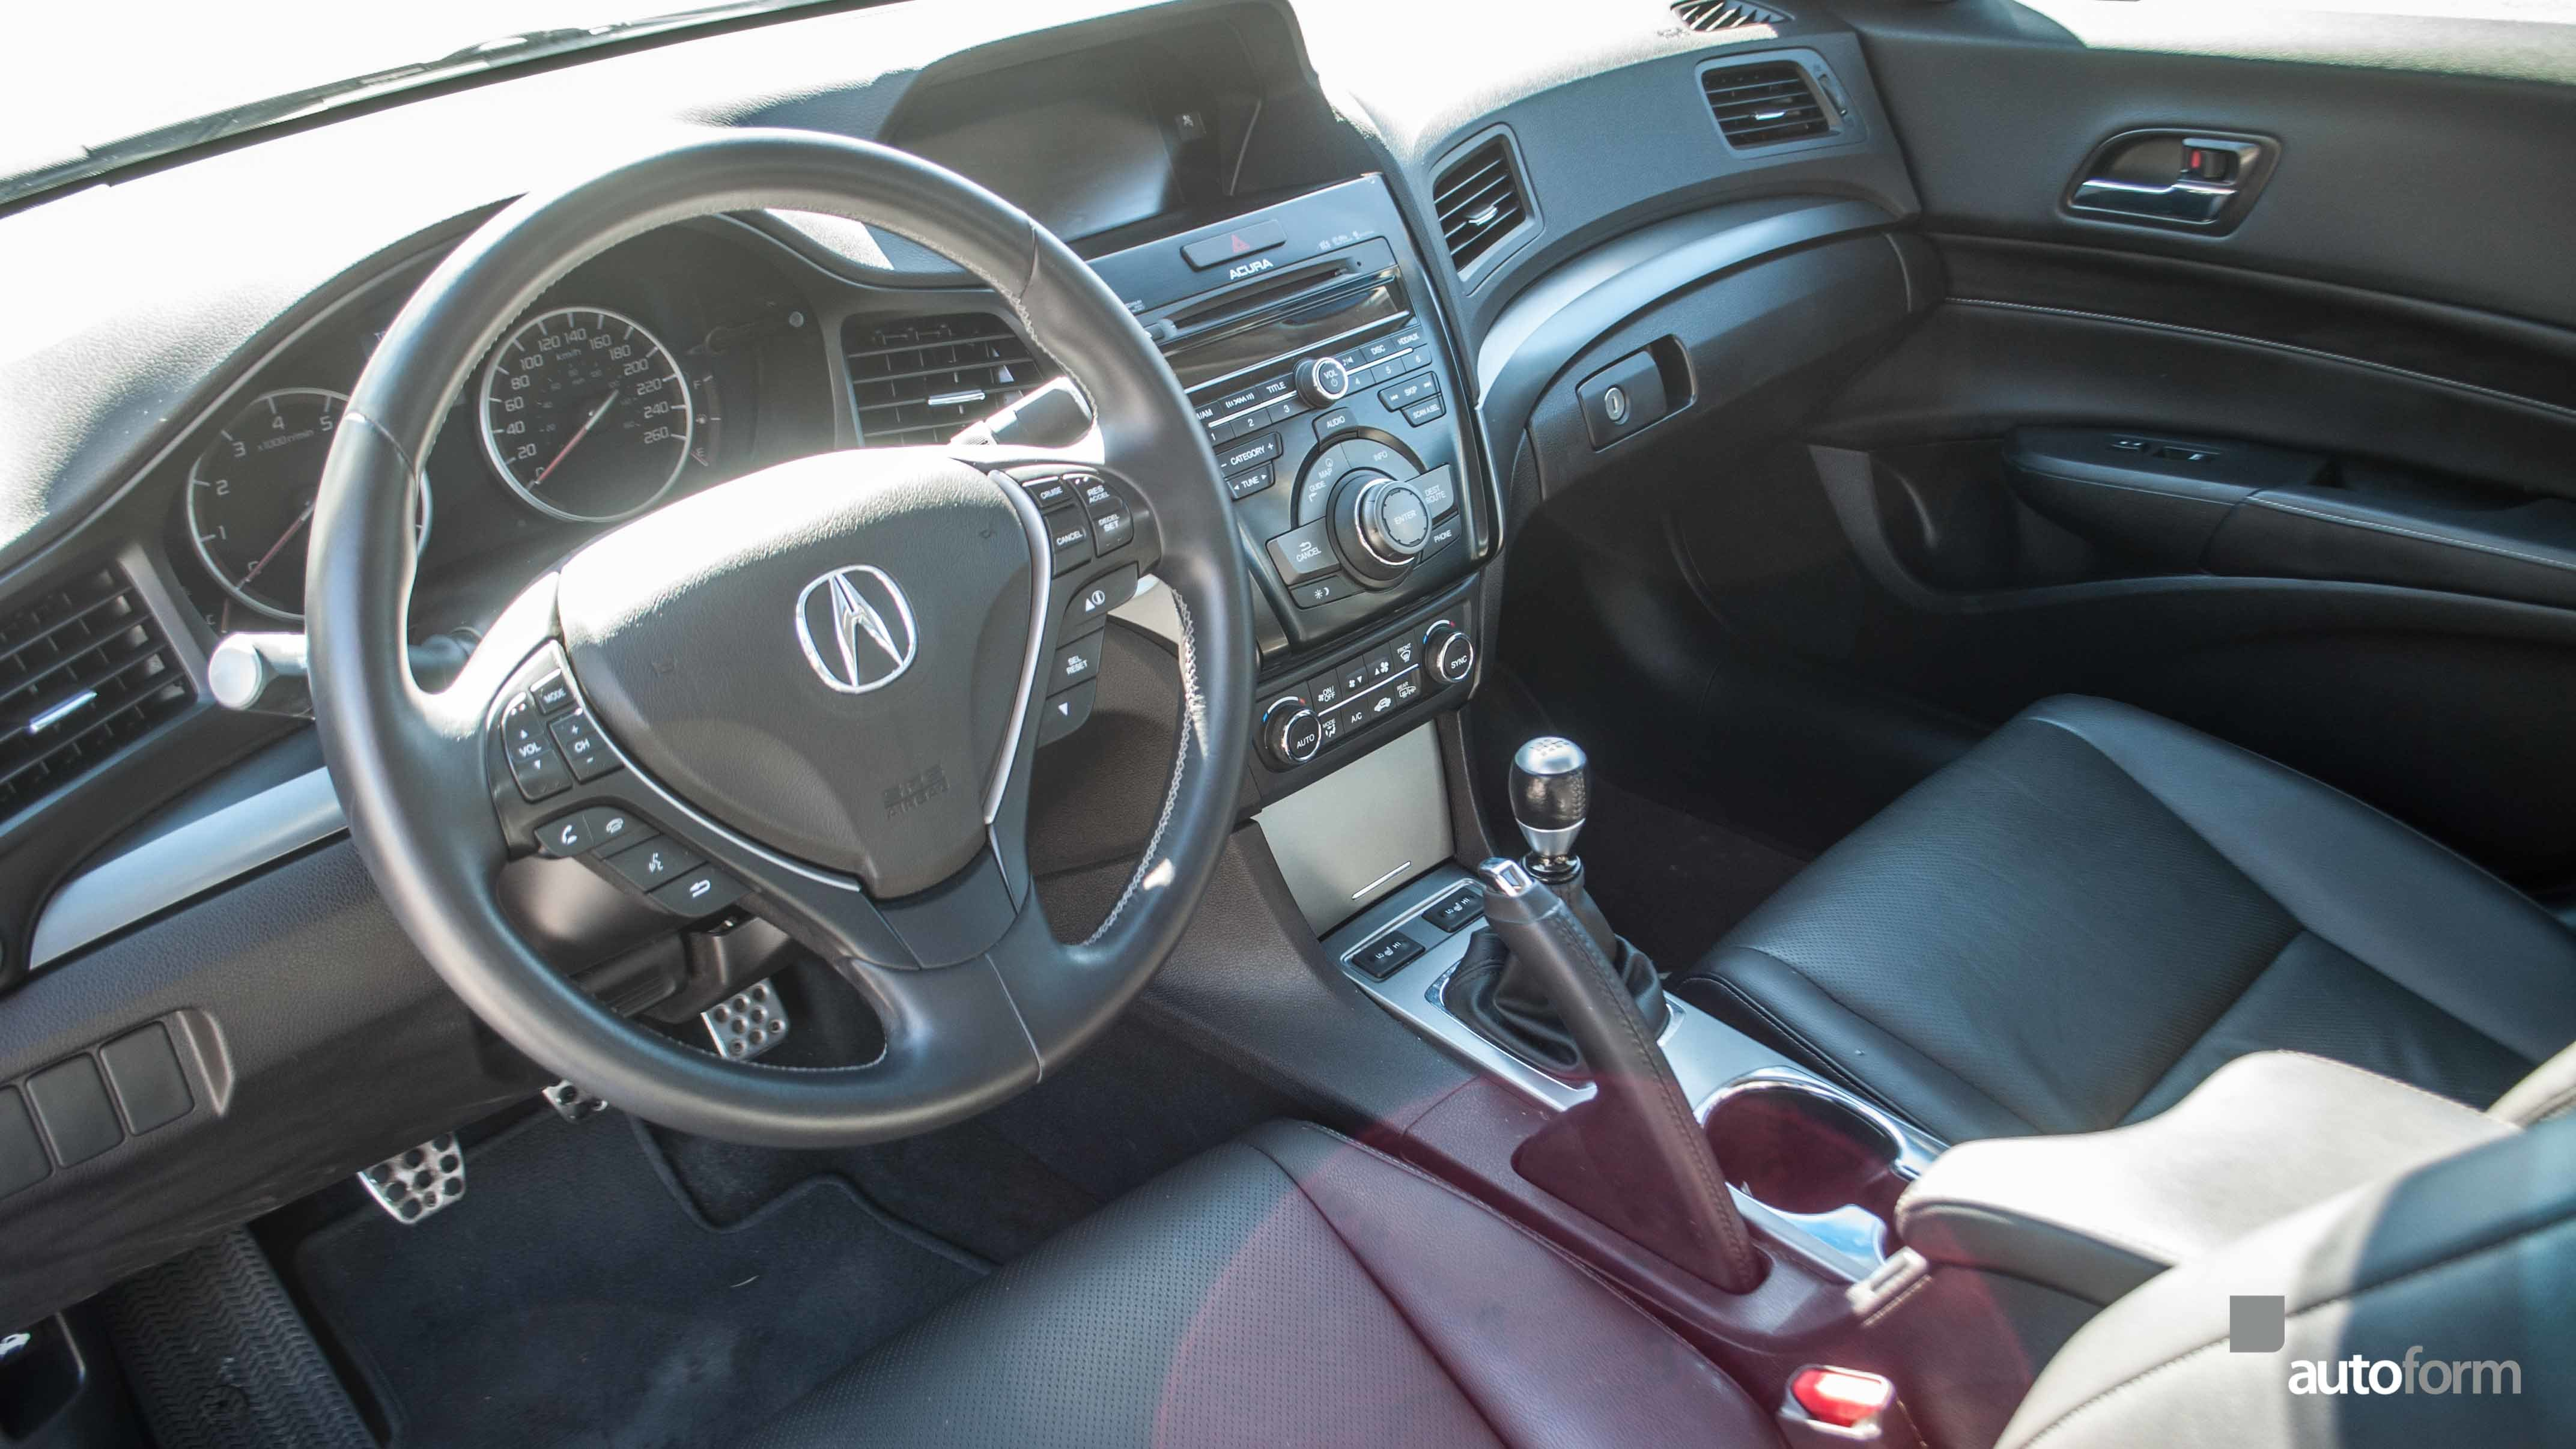 acura pict of mdx dark austin best wallpaper inspirational connection cherry cars dealership pearl